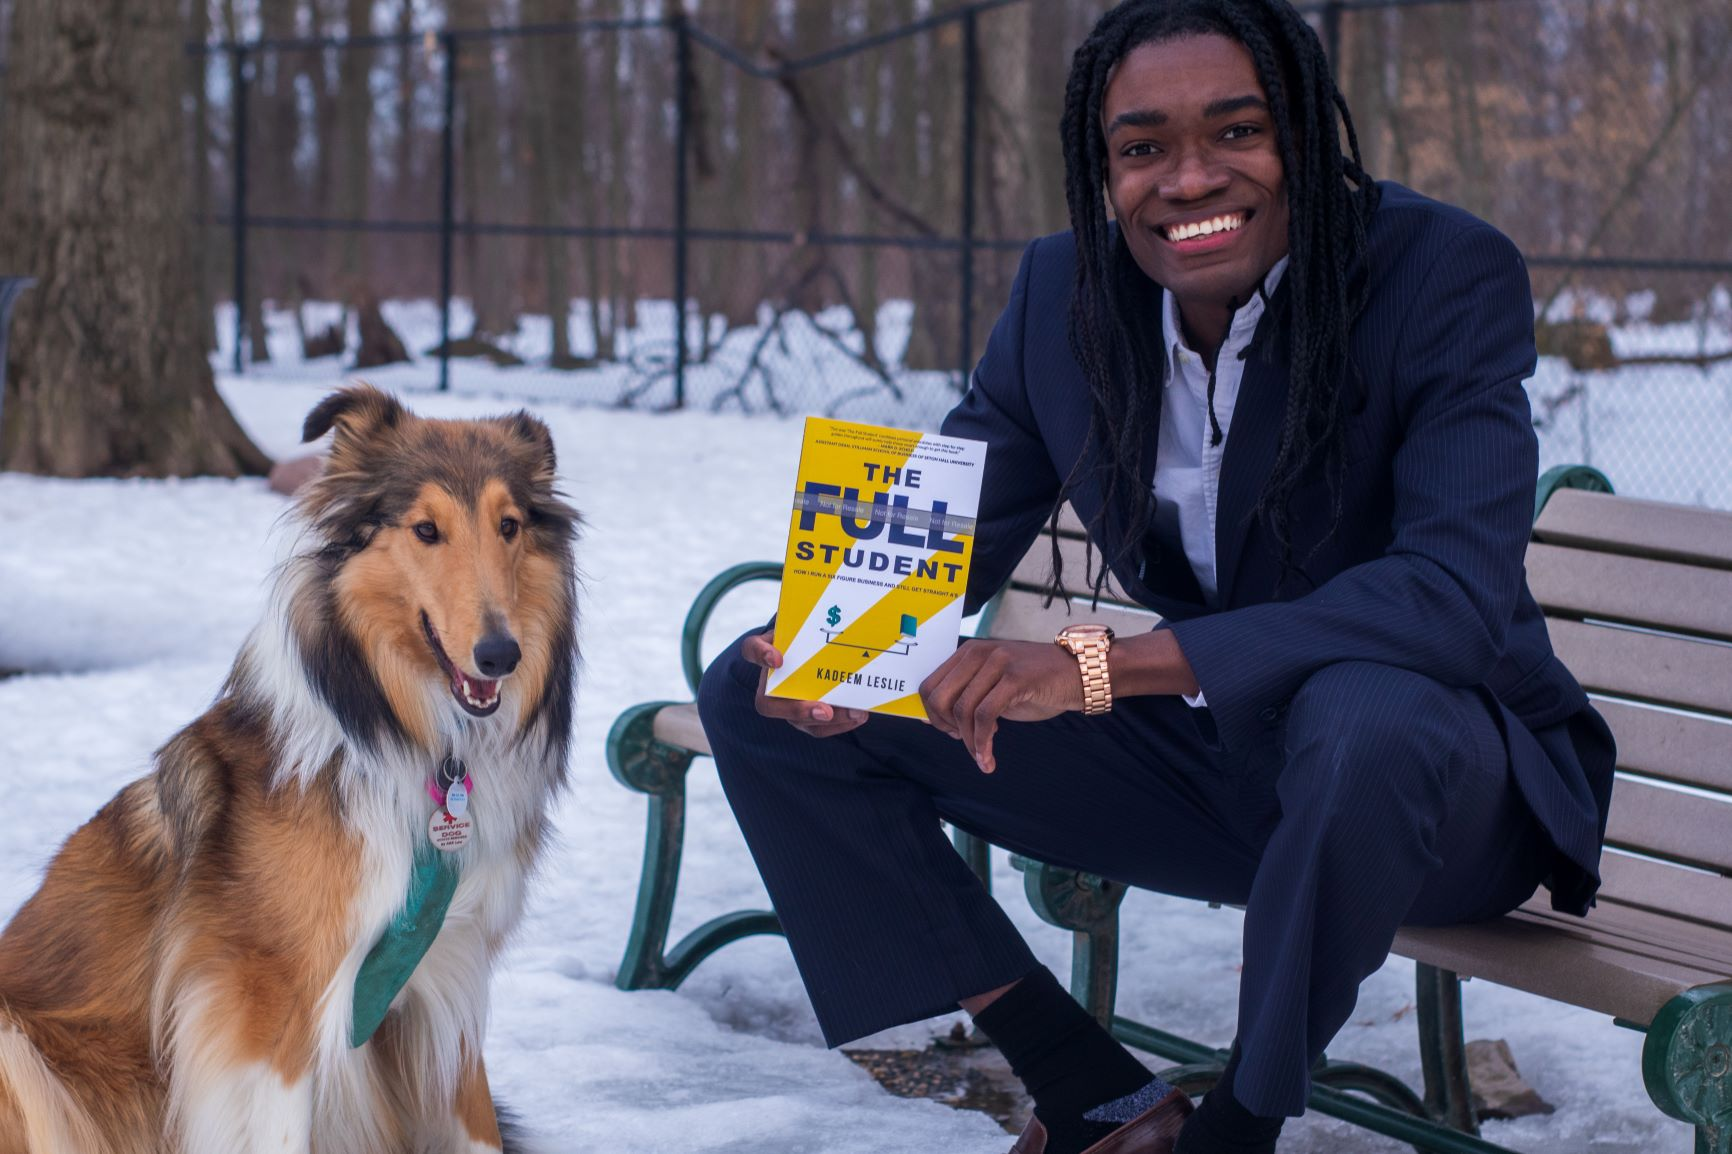 Kadeem Leslie with his dog and The Full Student book